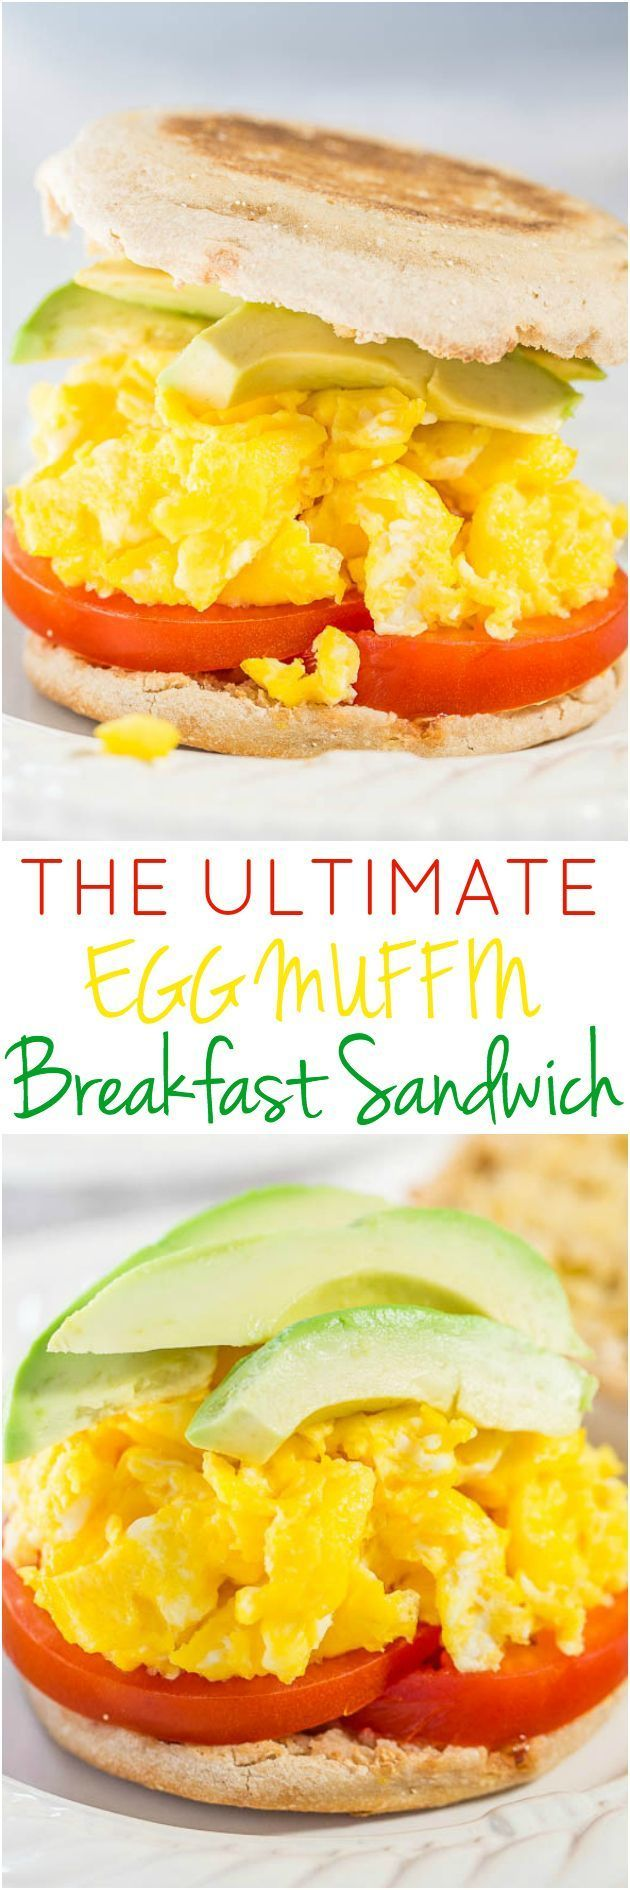 The Ultimate Egg Muffin Breakfast Sandwich - Skip the drivethru and make your own breakfast sandwich in 10 minutes! Healthier, tastes way better, and freezer-friendly for a grab-and-go easy breakfast!